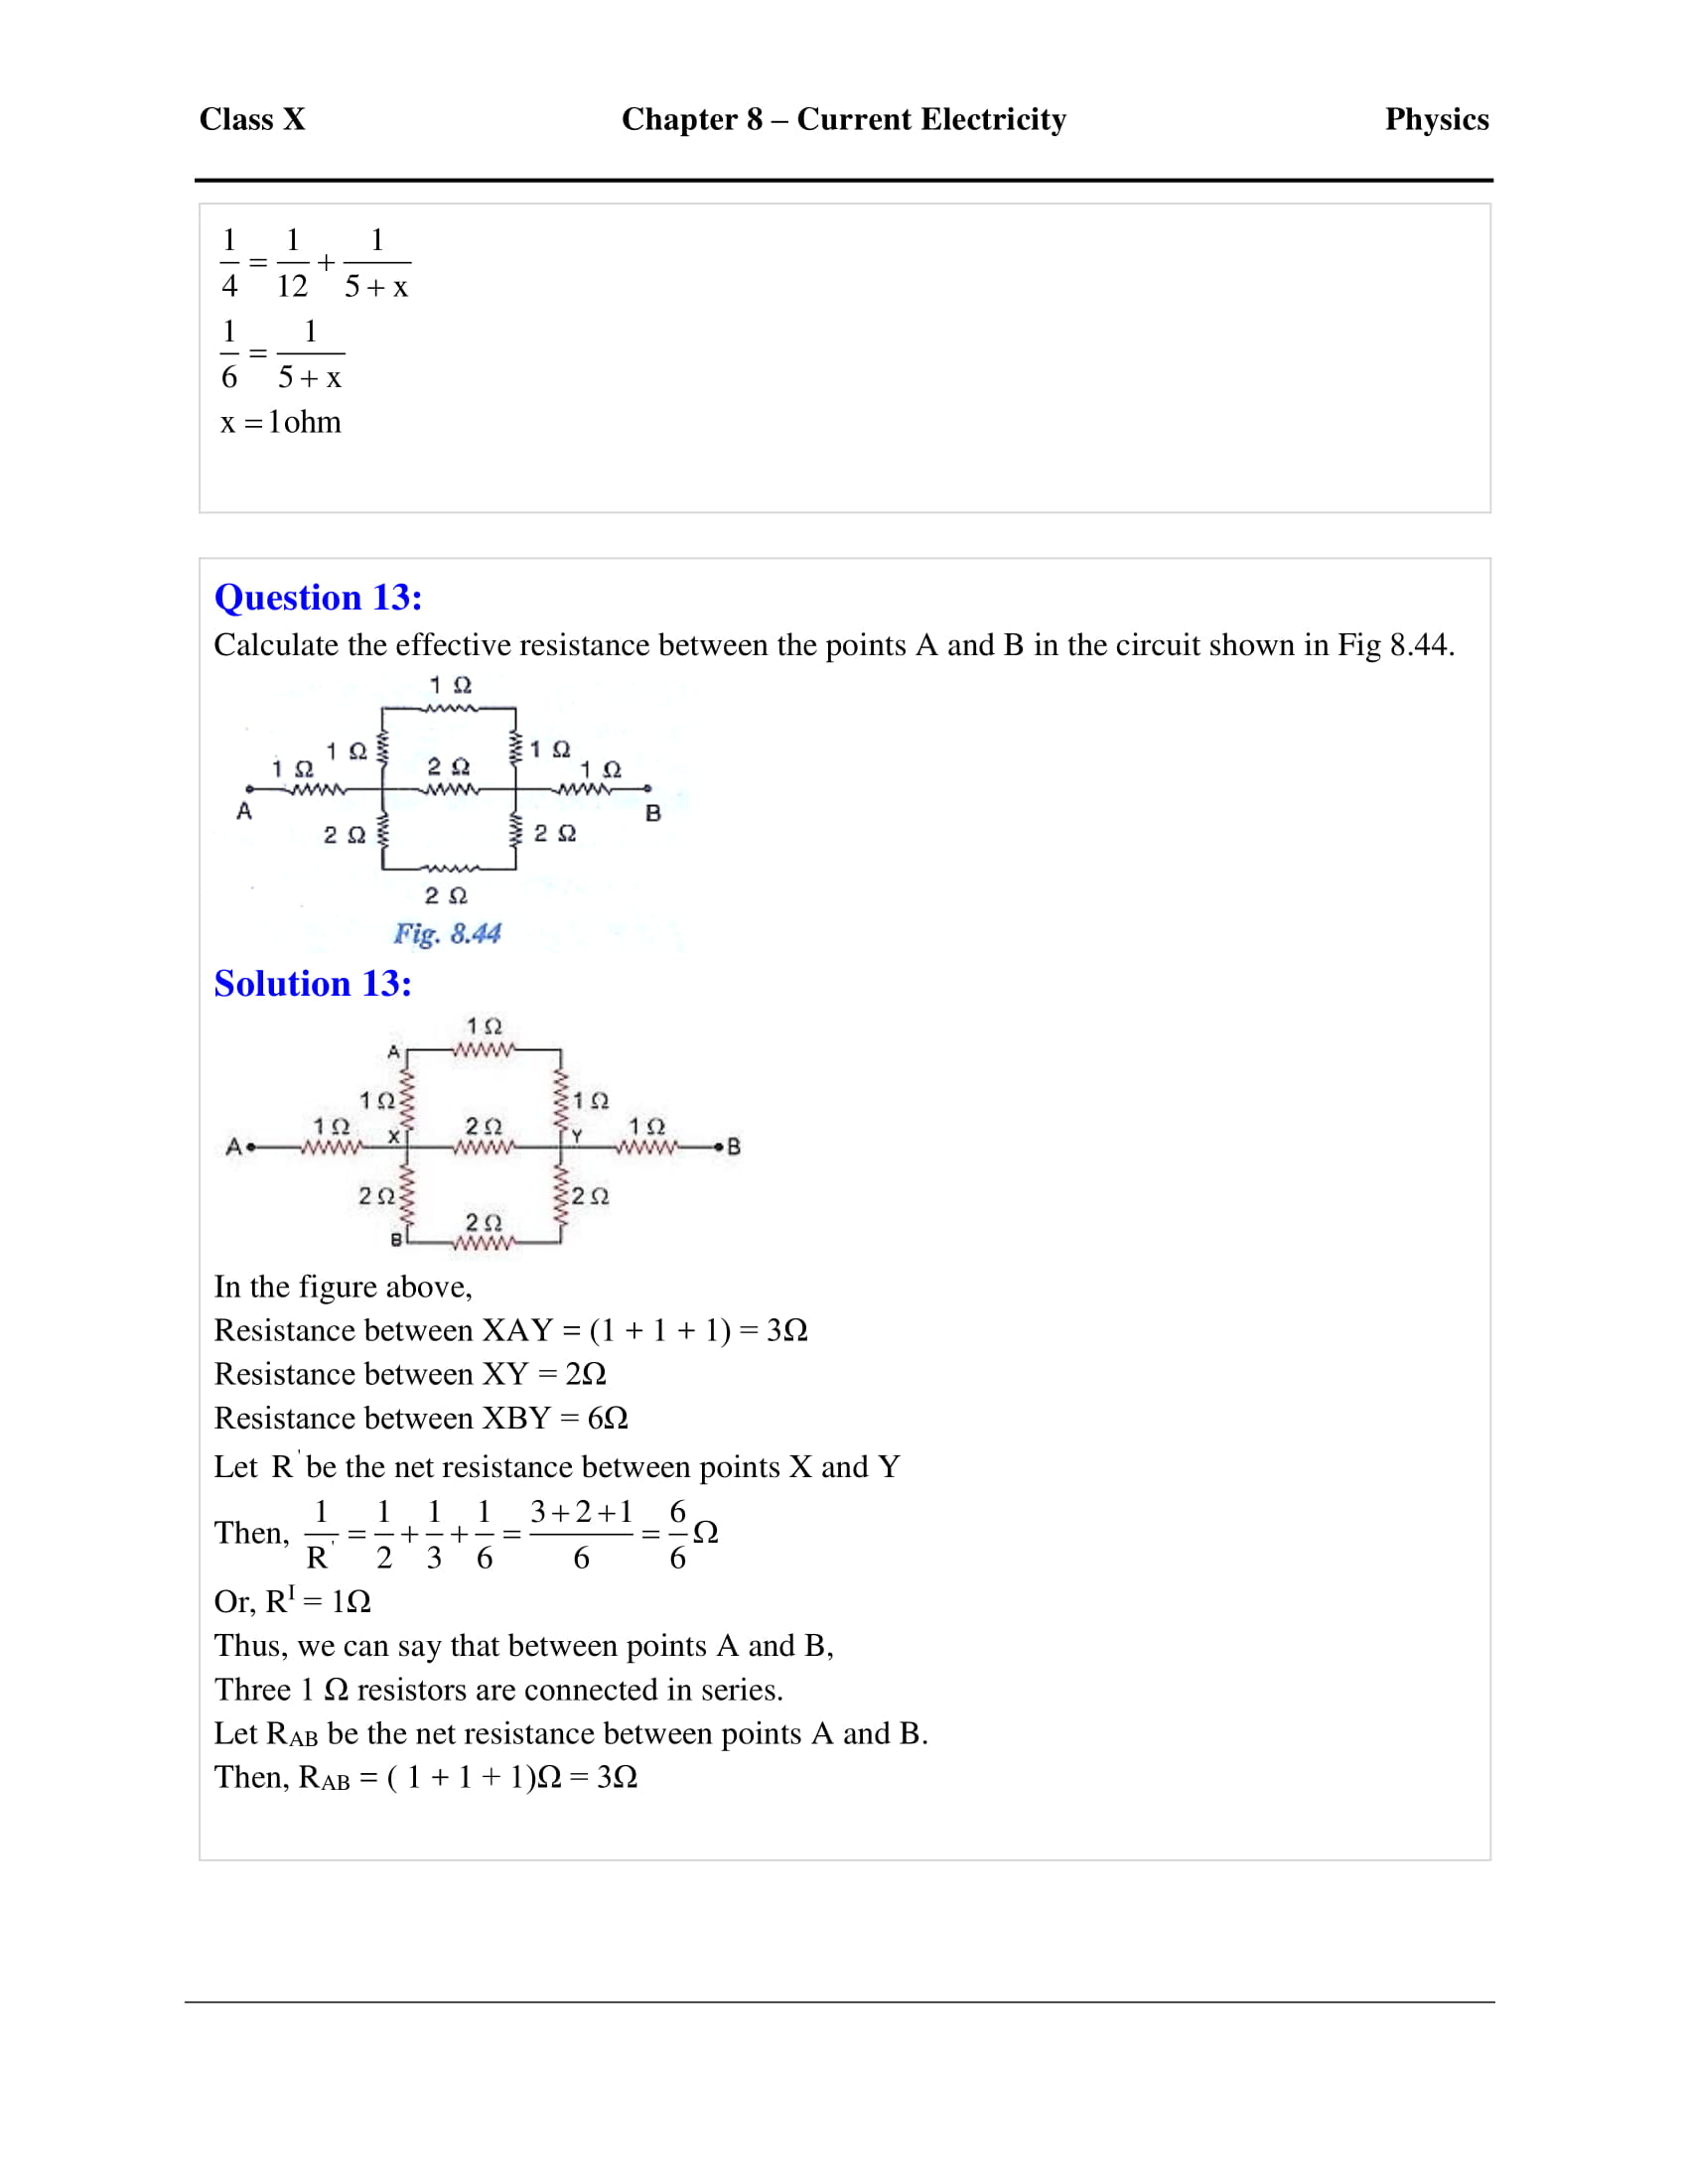 icse-selina-physics-solutions-class-10-chapter-8-current-electricity-29